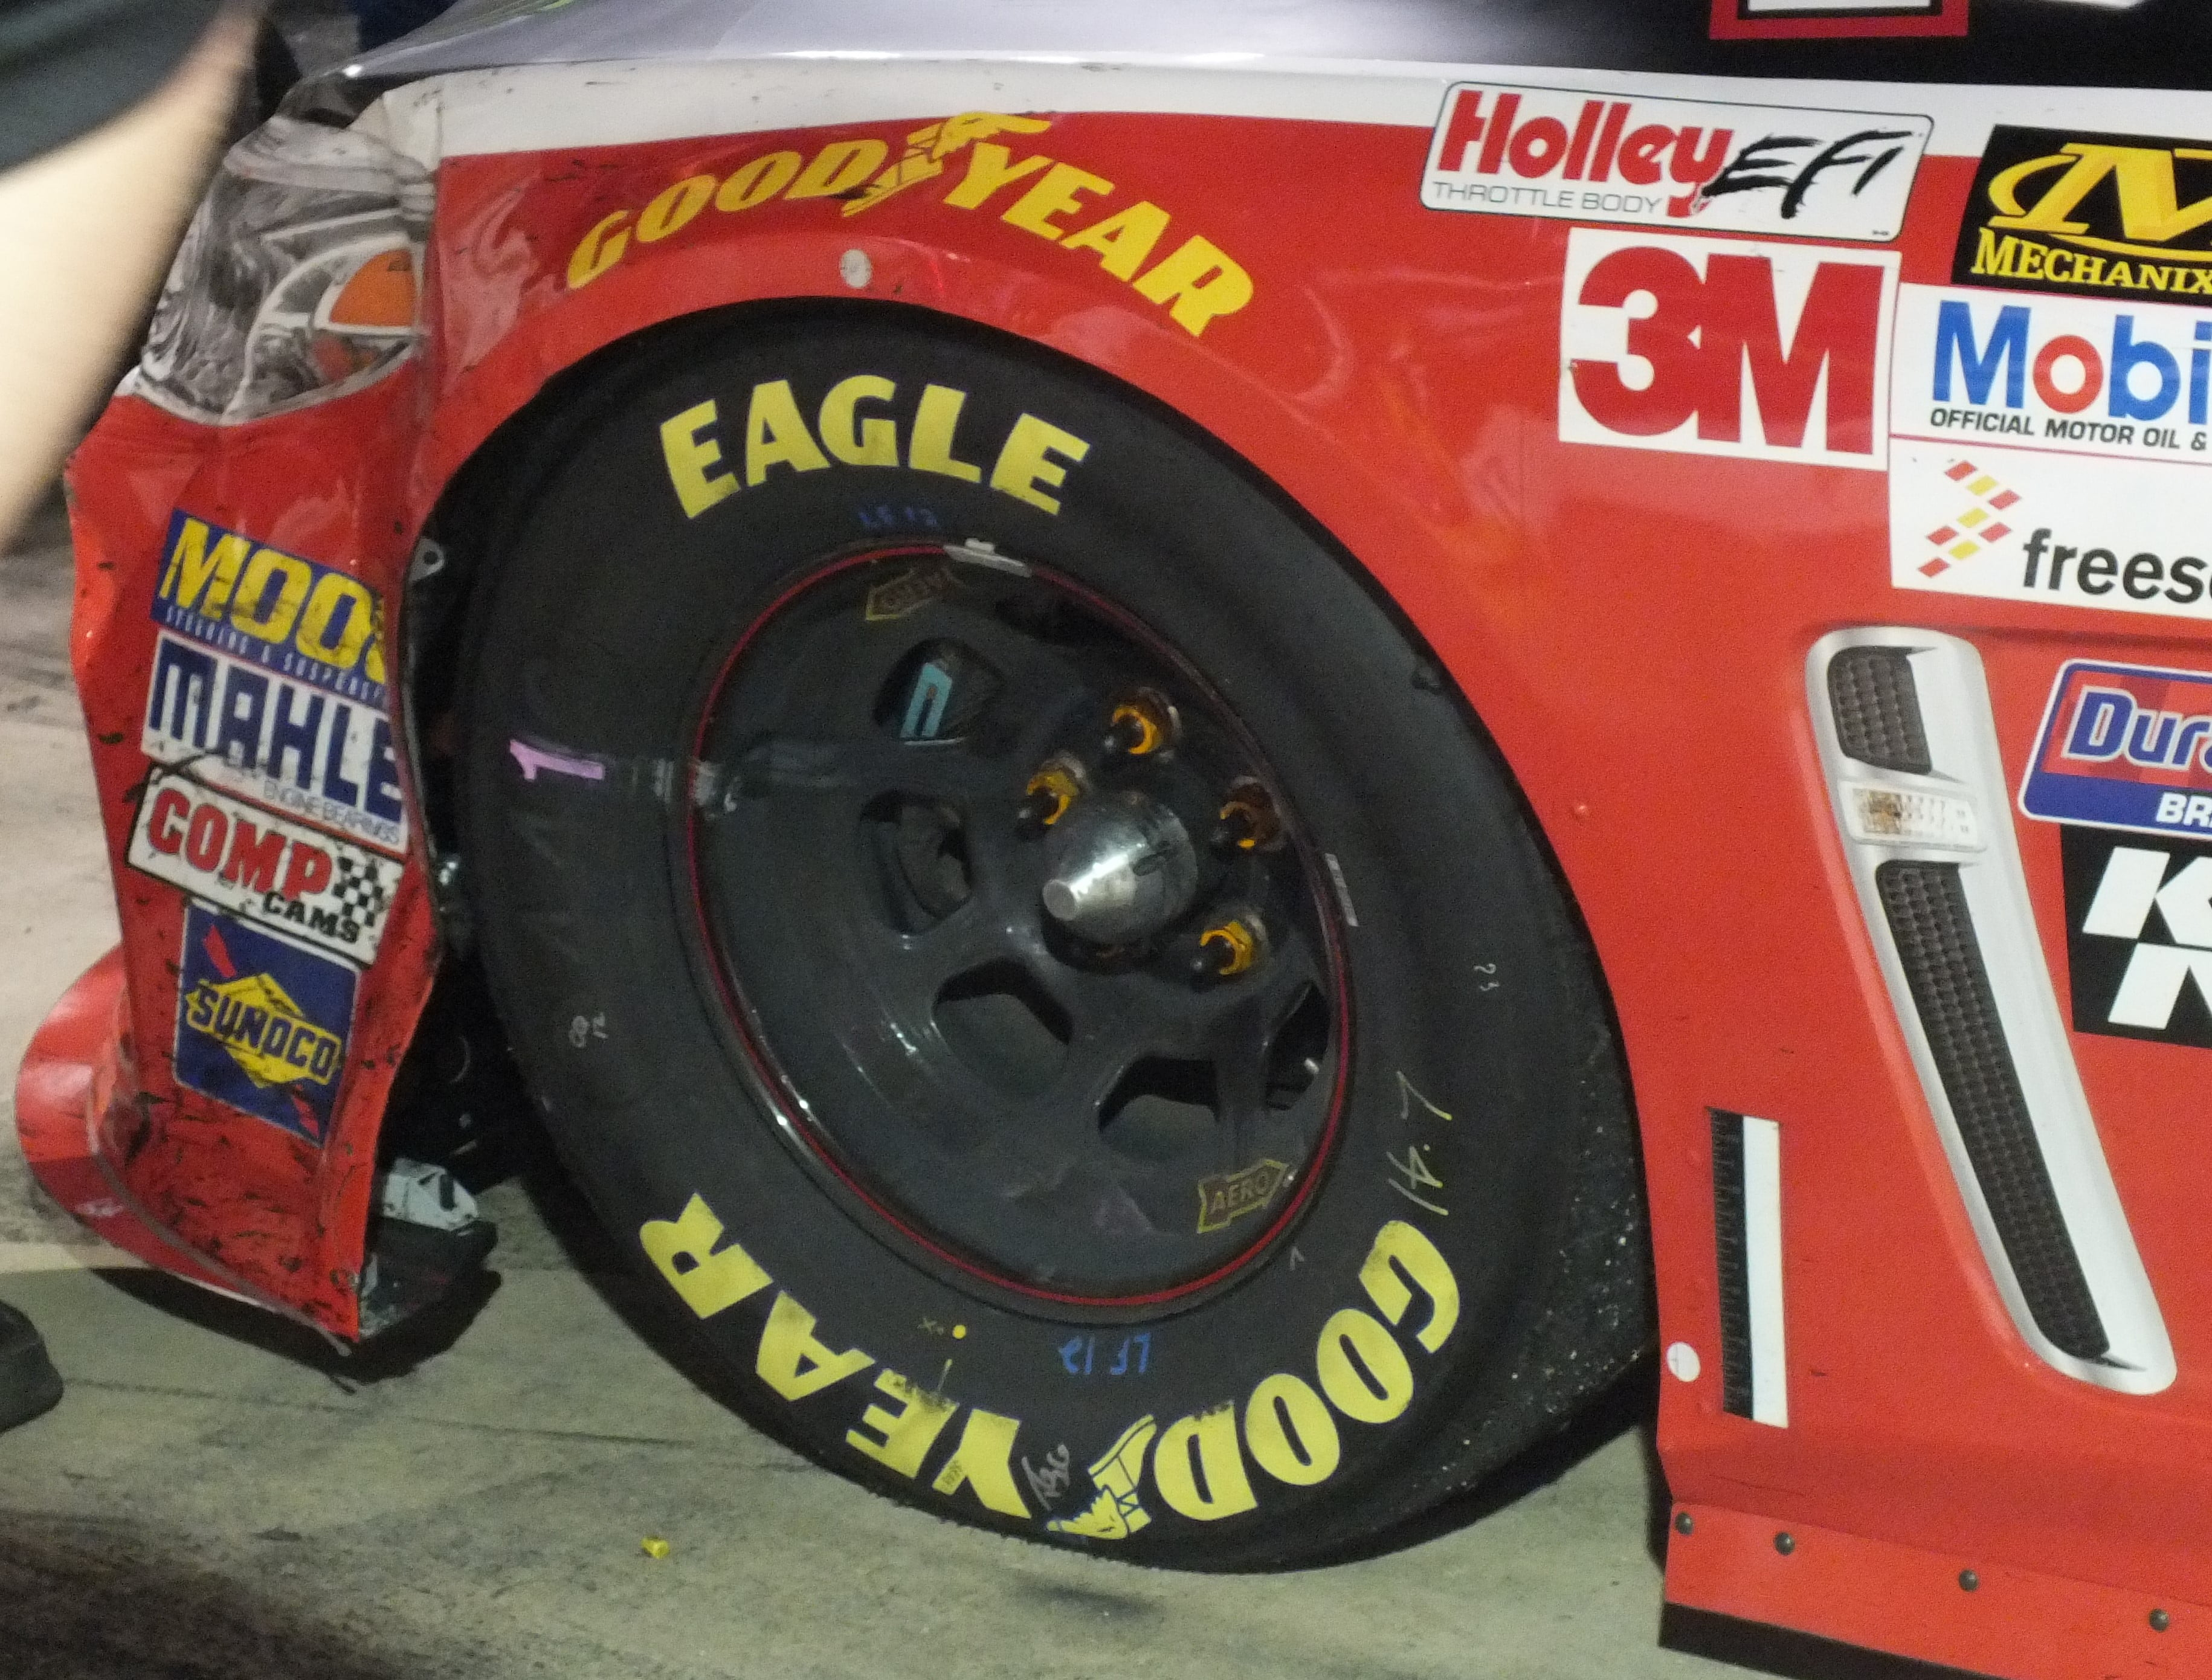 NASCAR Created the Lug Nut Problem, They Should Fix It